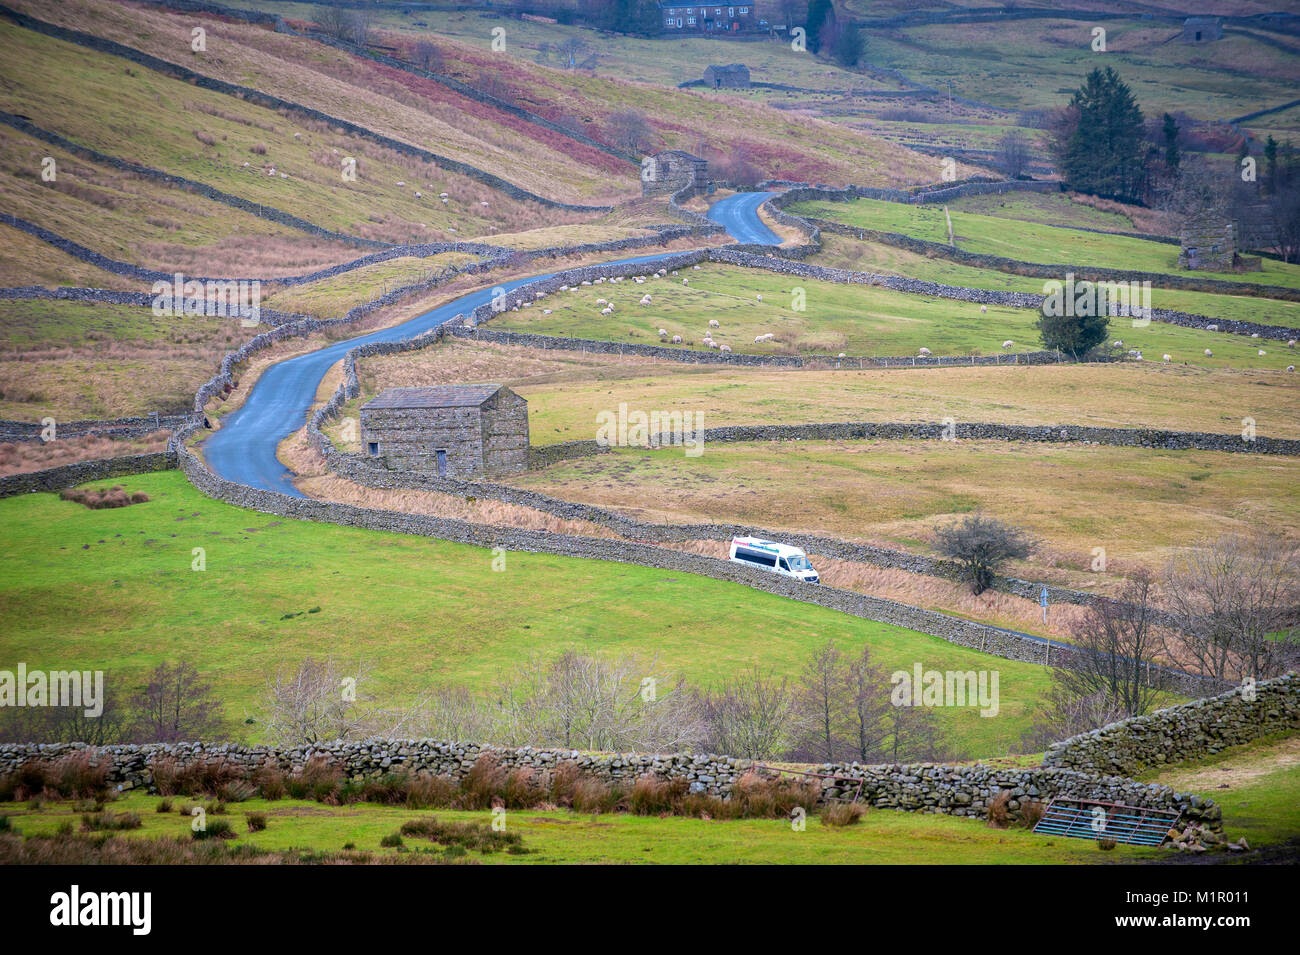 The Little White Bus makes its way on its Swaledale shuttle route this time leaving Keld for next stop Muker. - Stock Image